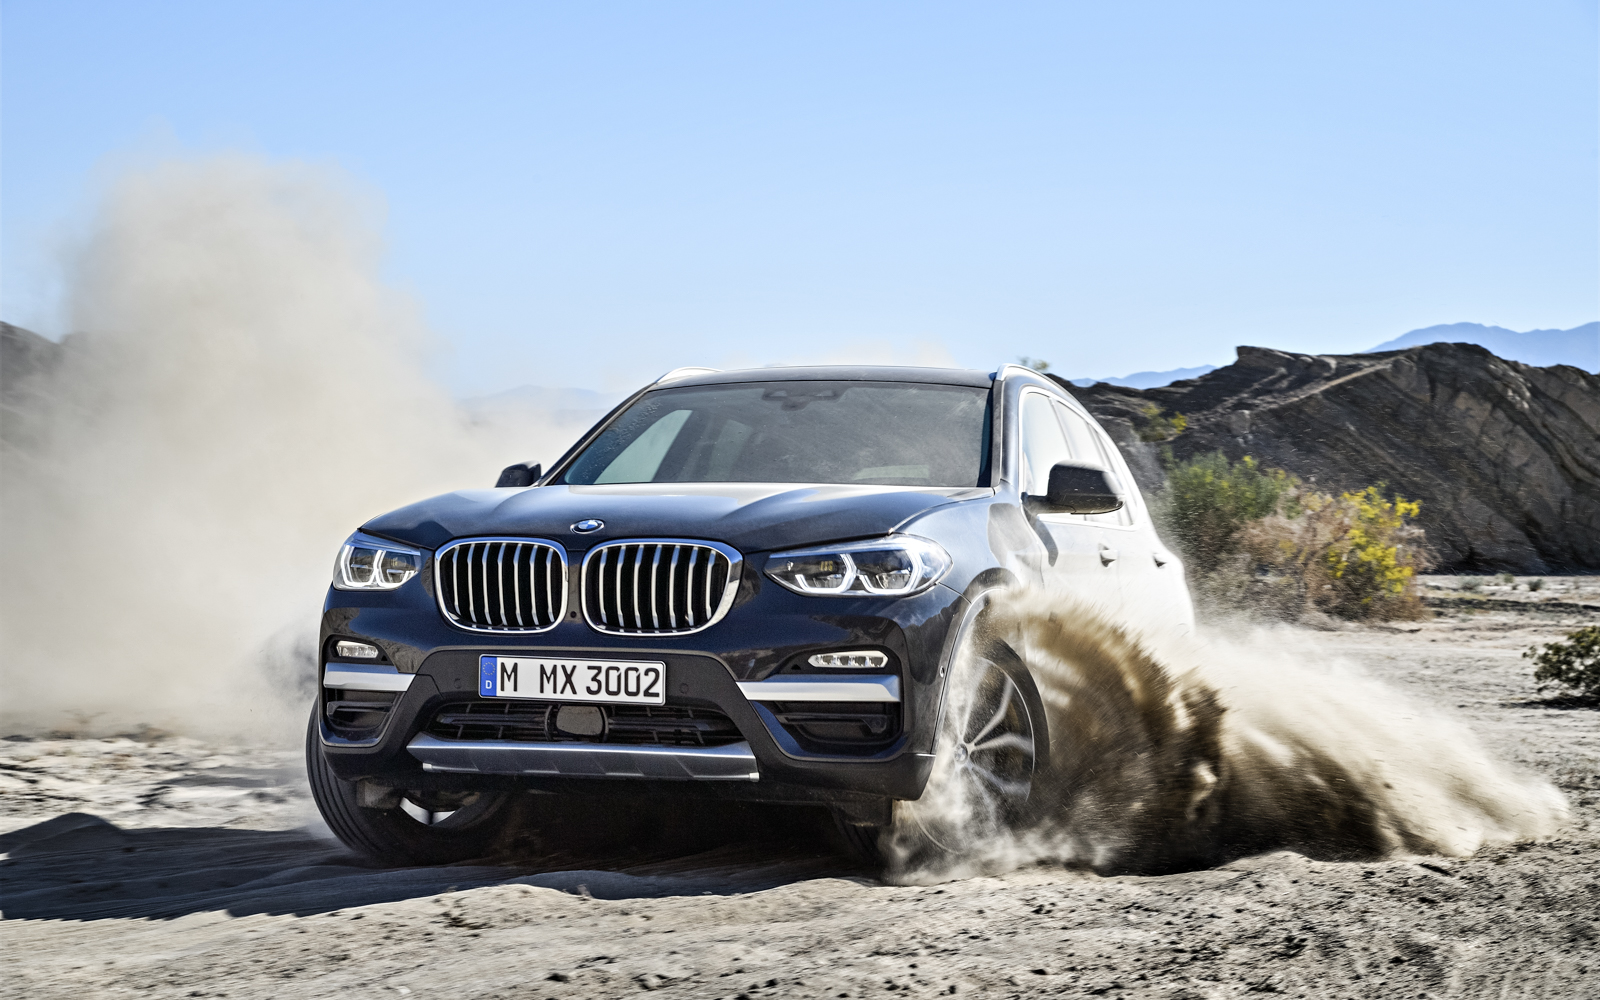 The 2018 BMW X3 builds on previous successes